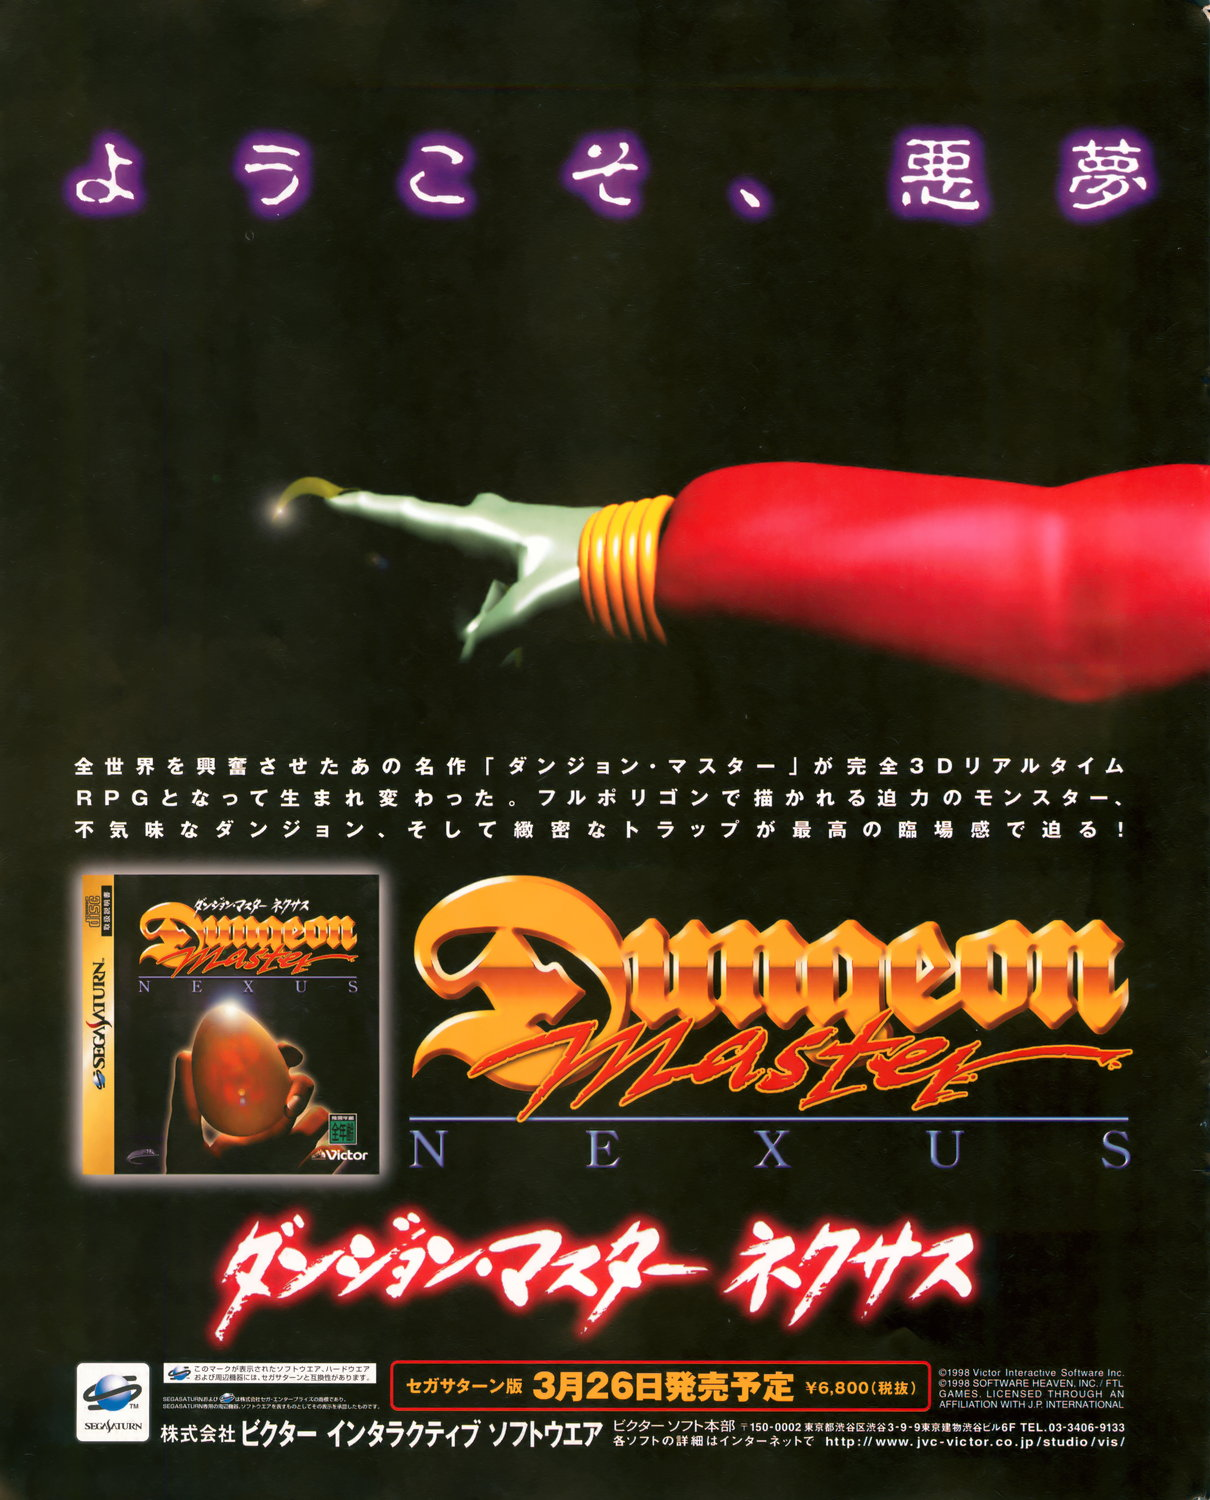 Dungeon Master Nexus Advertisement published in Japanese magazine 'Sega Saturn Magazine', Vol 7 13 March 1998, Page 2